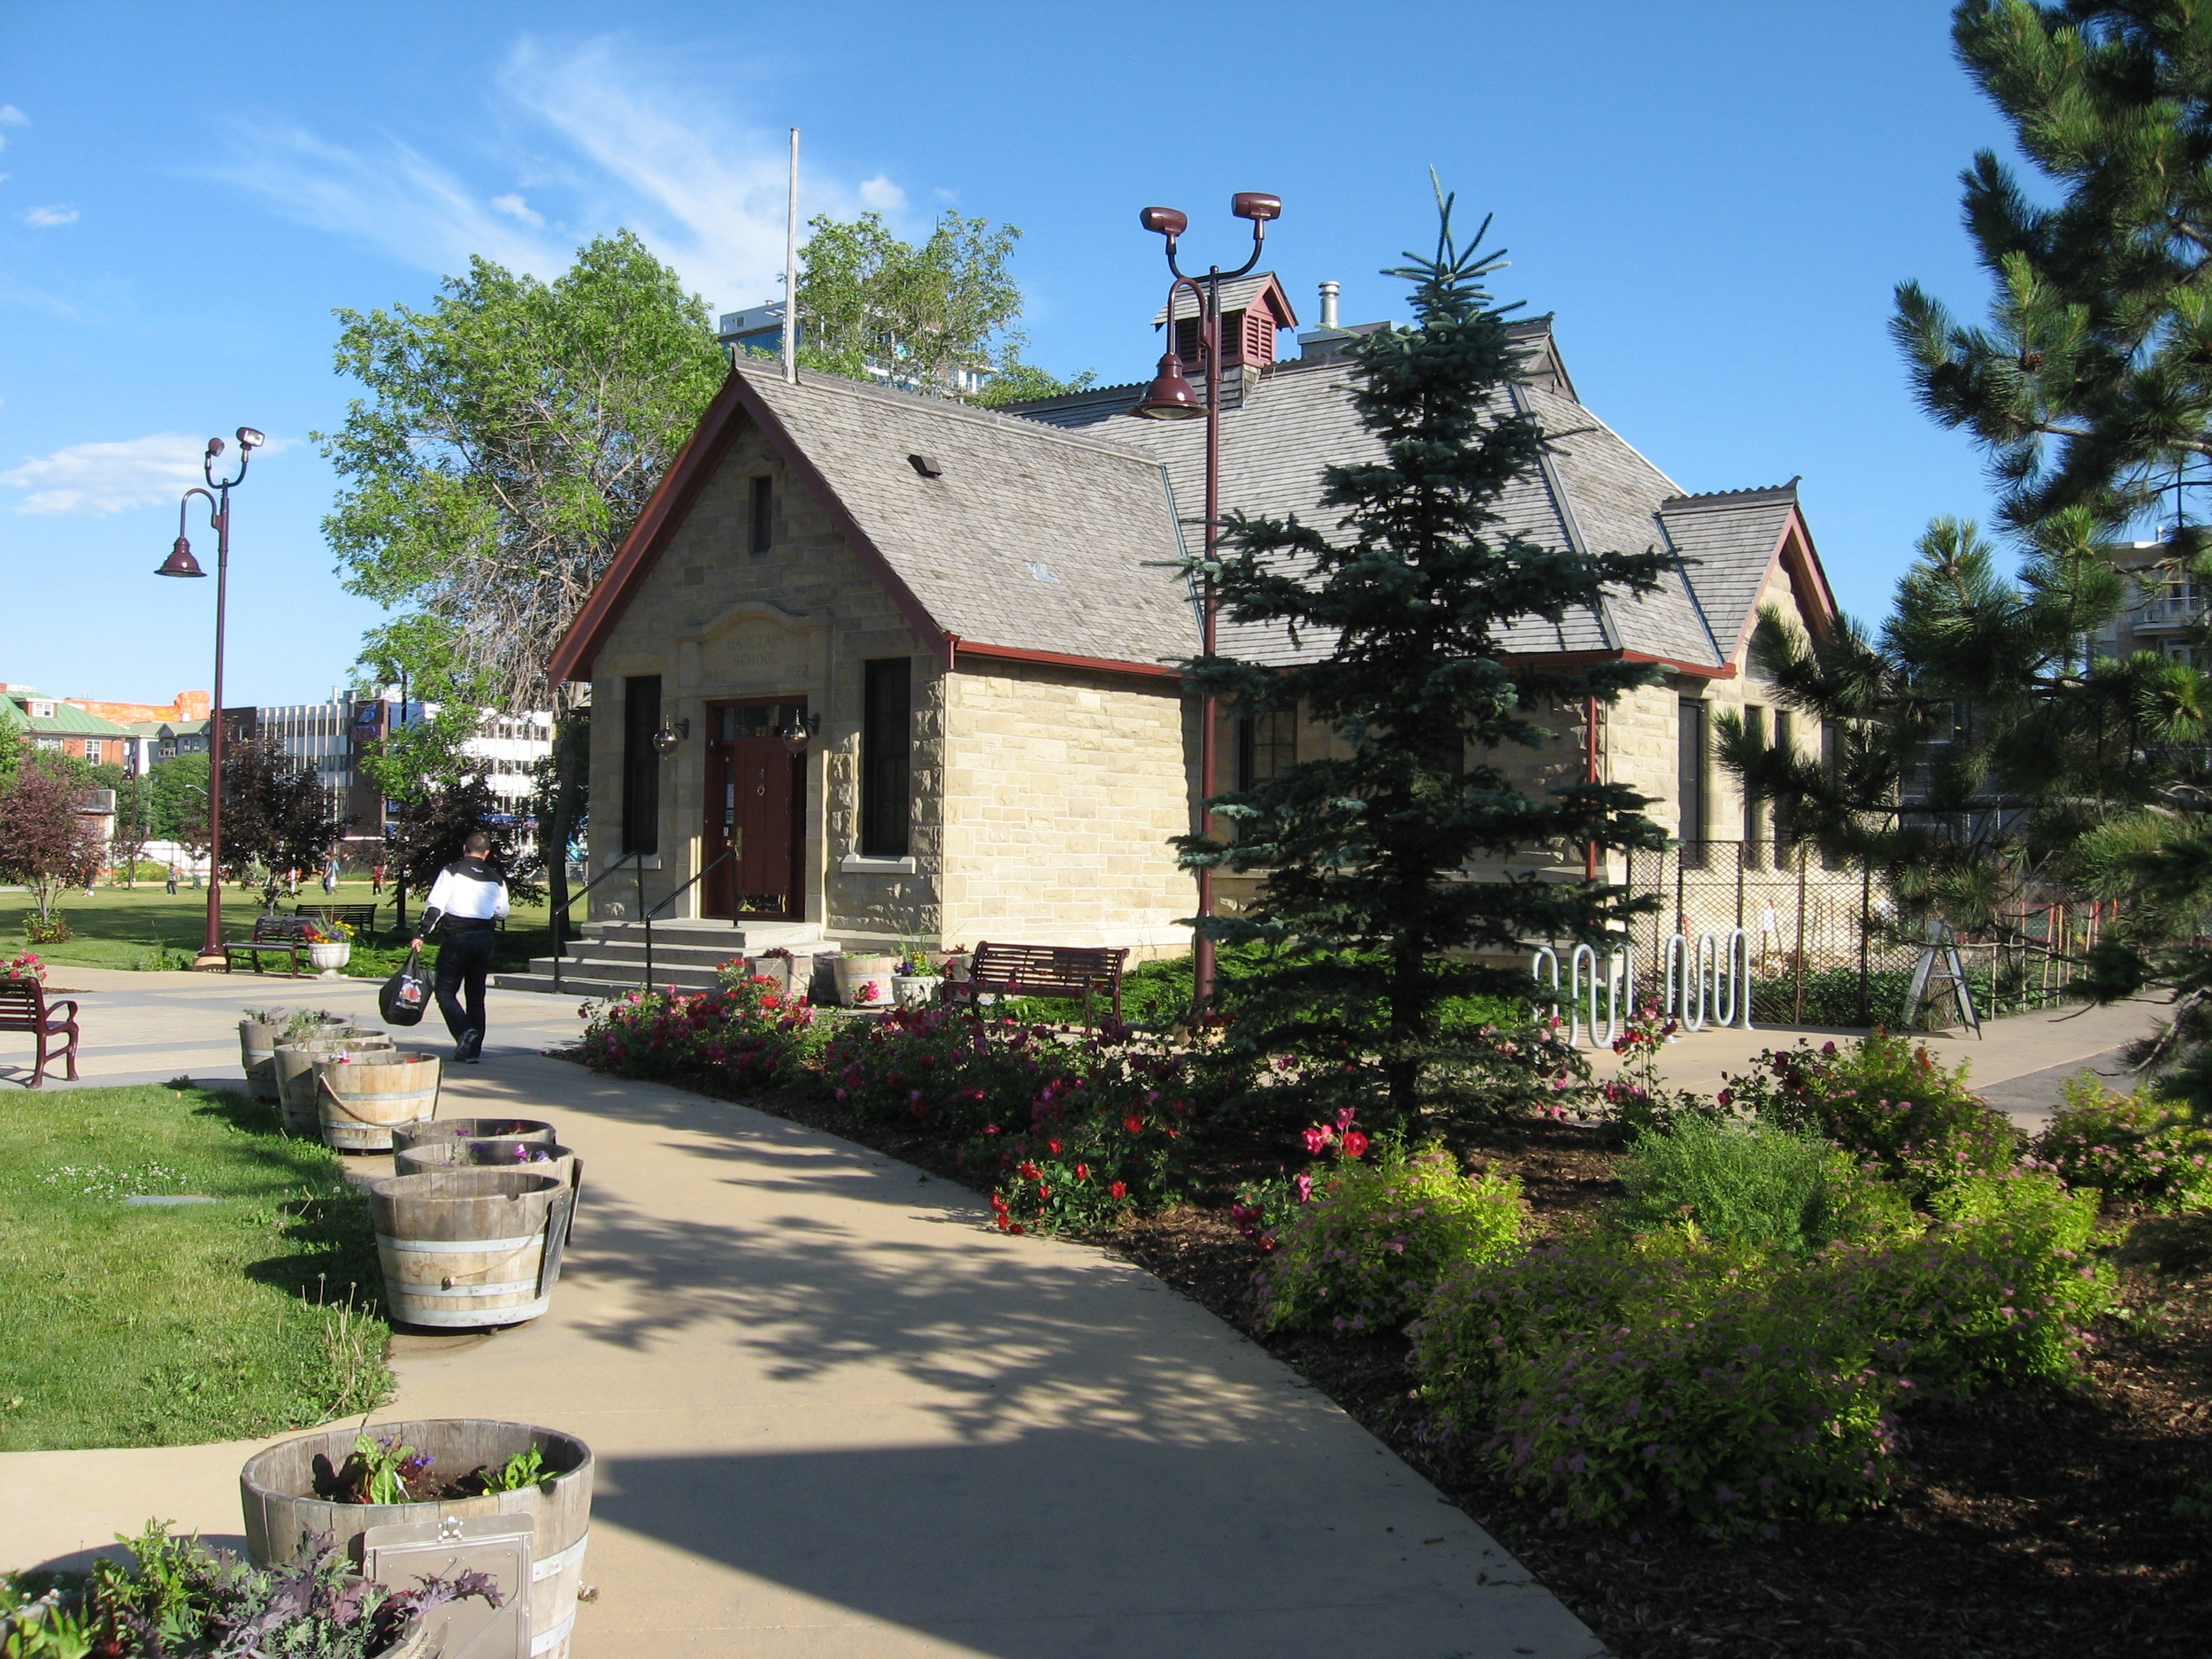 The historic Haultain School which is now the headquarters of the Calgary Parks Foundation.